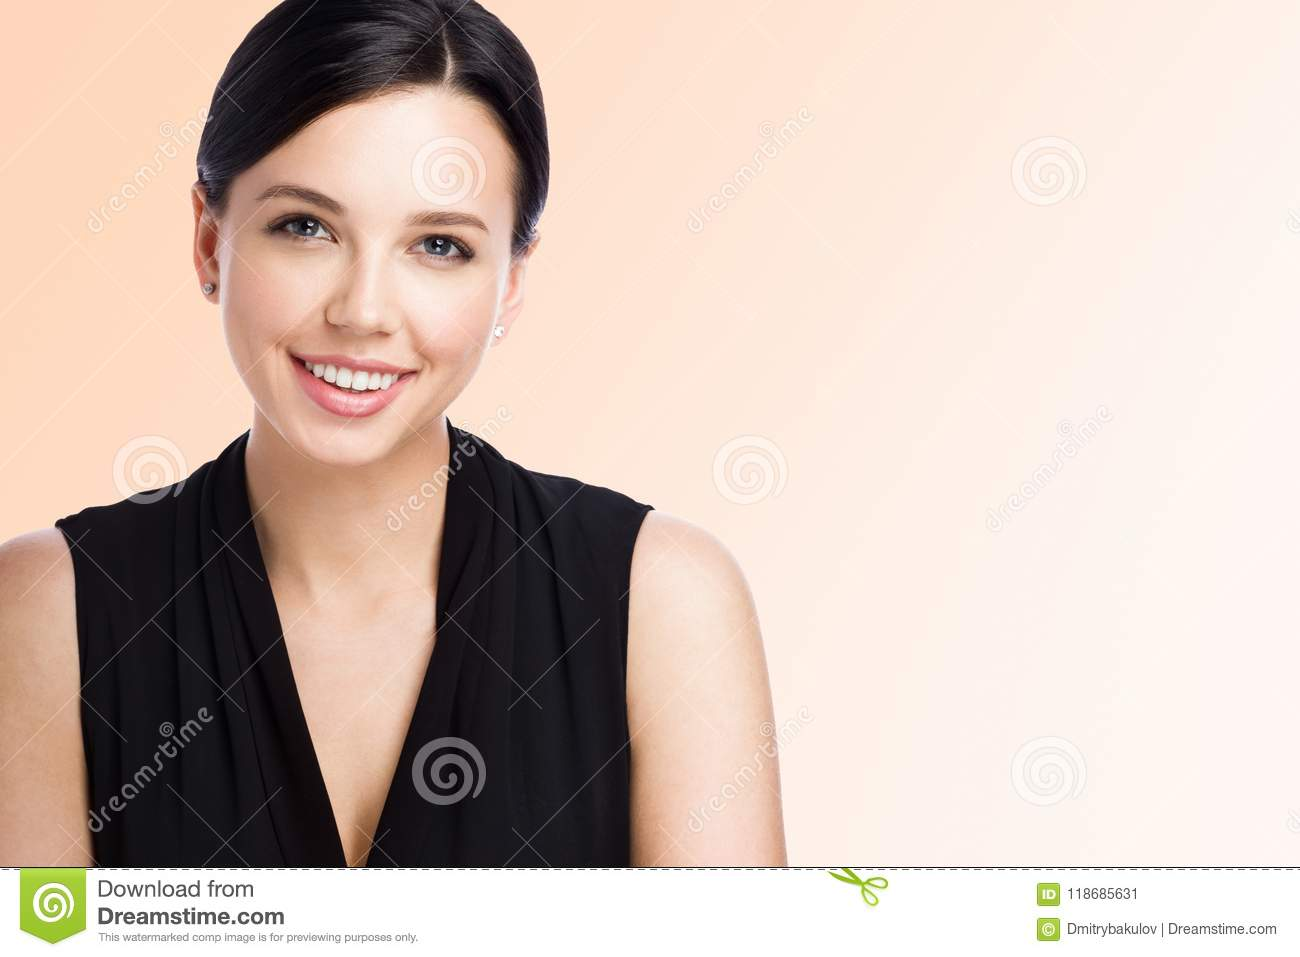 Closeup portrait of attractive young woman. Beautiful office worker